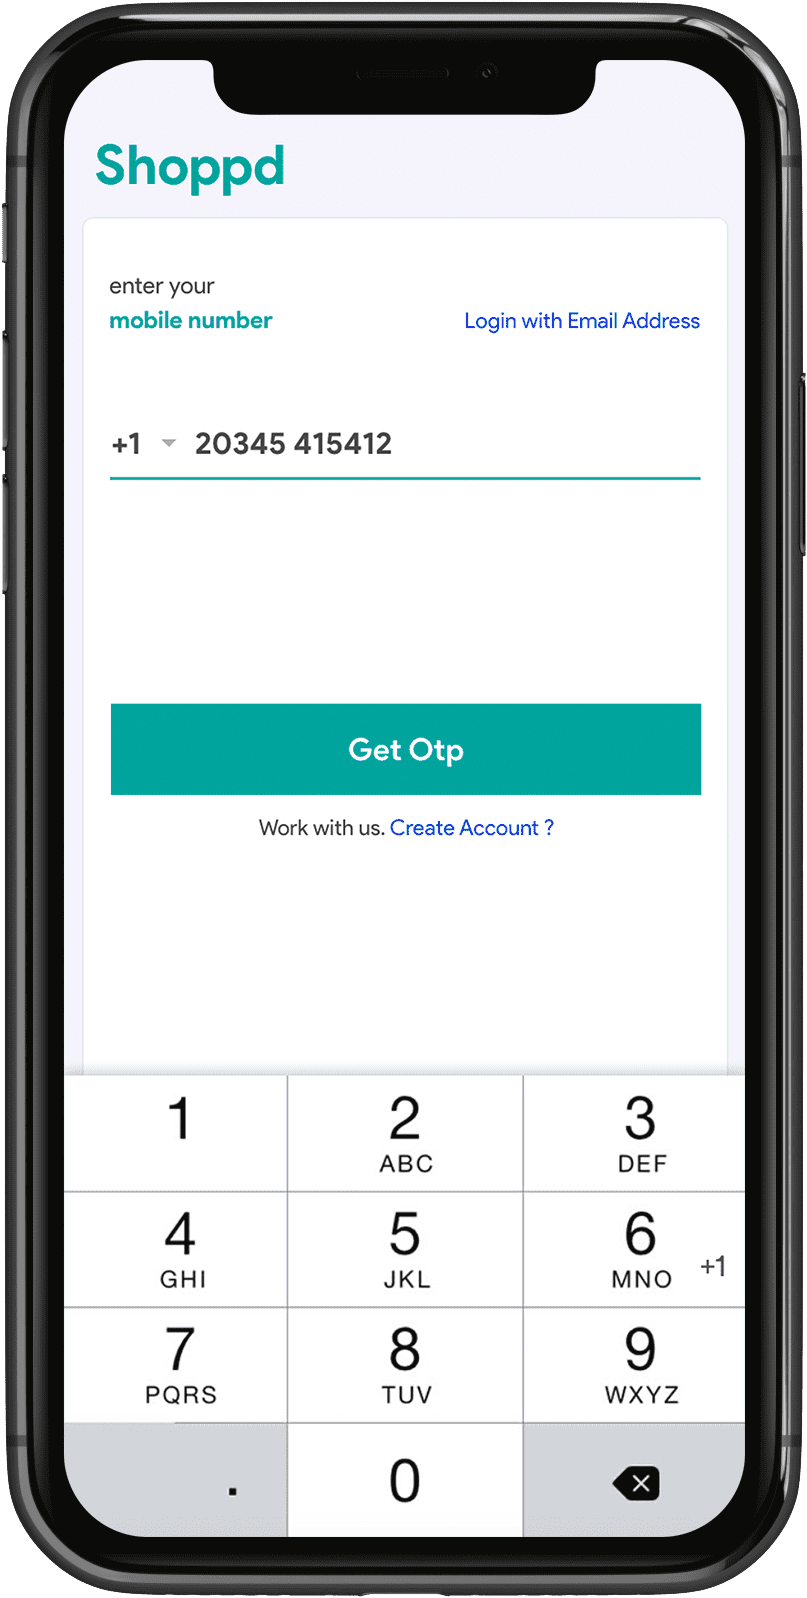 login-with-mobile-number-in-food-delivery-driver-app